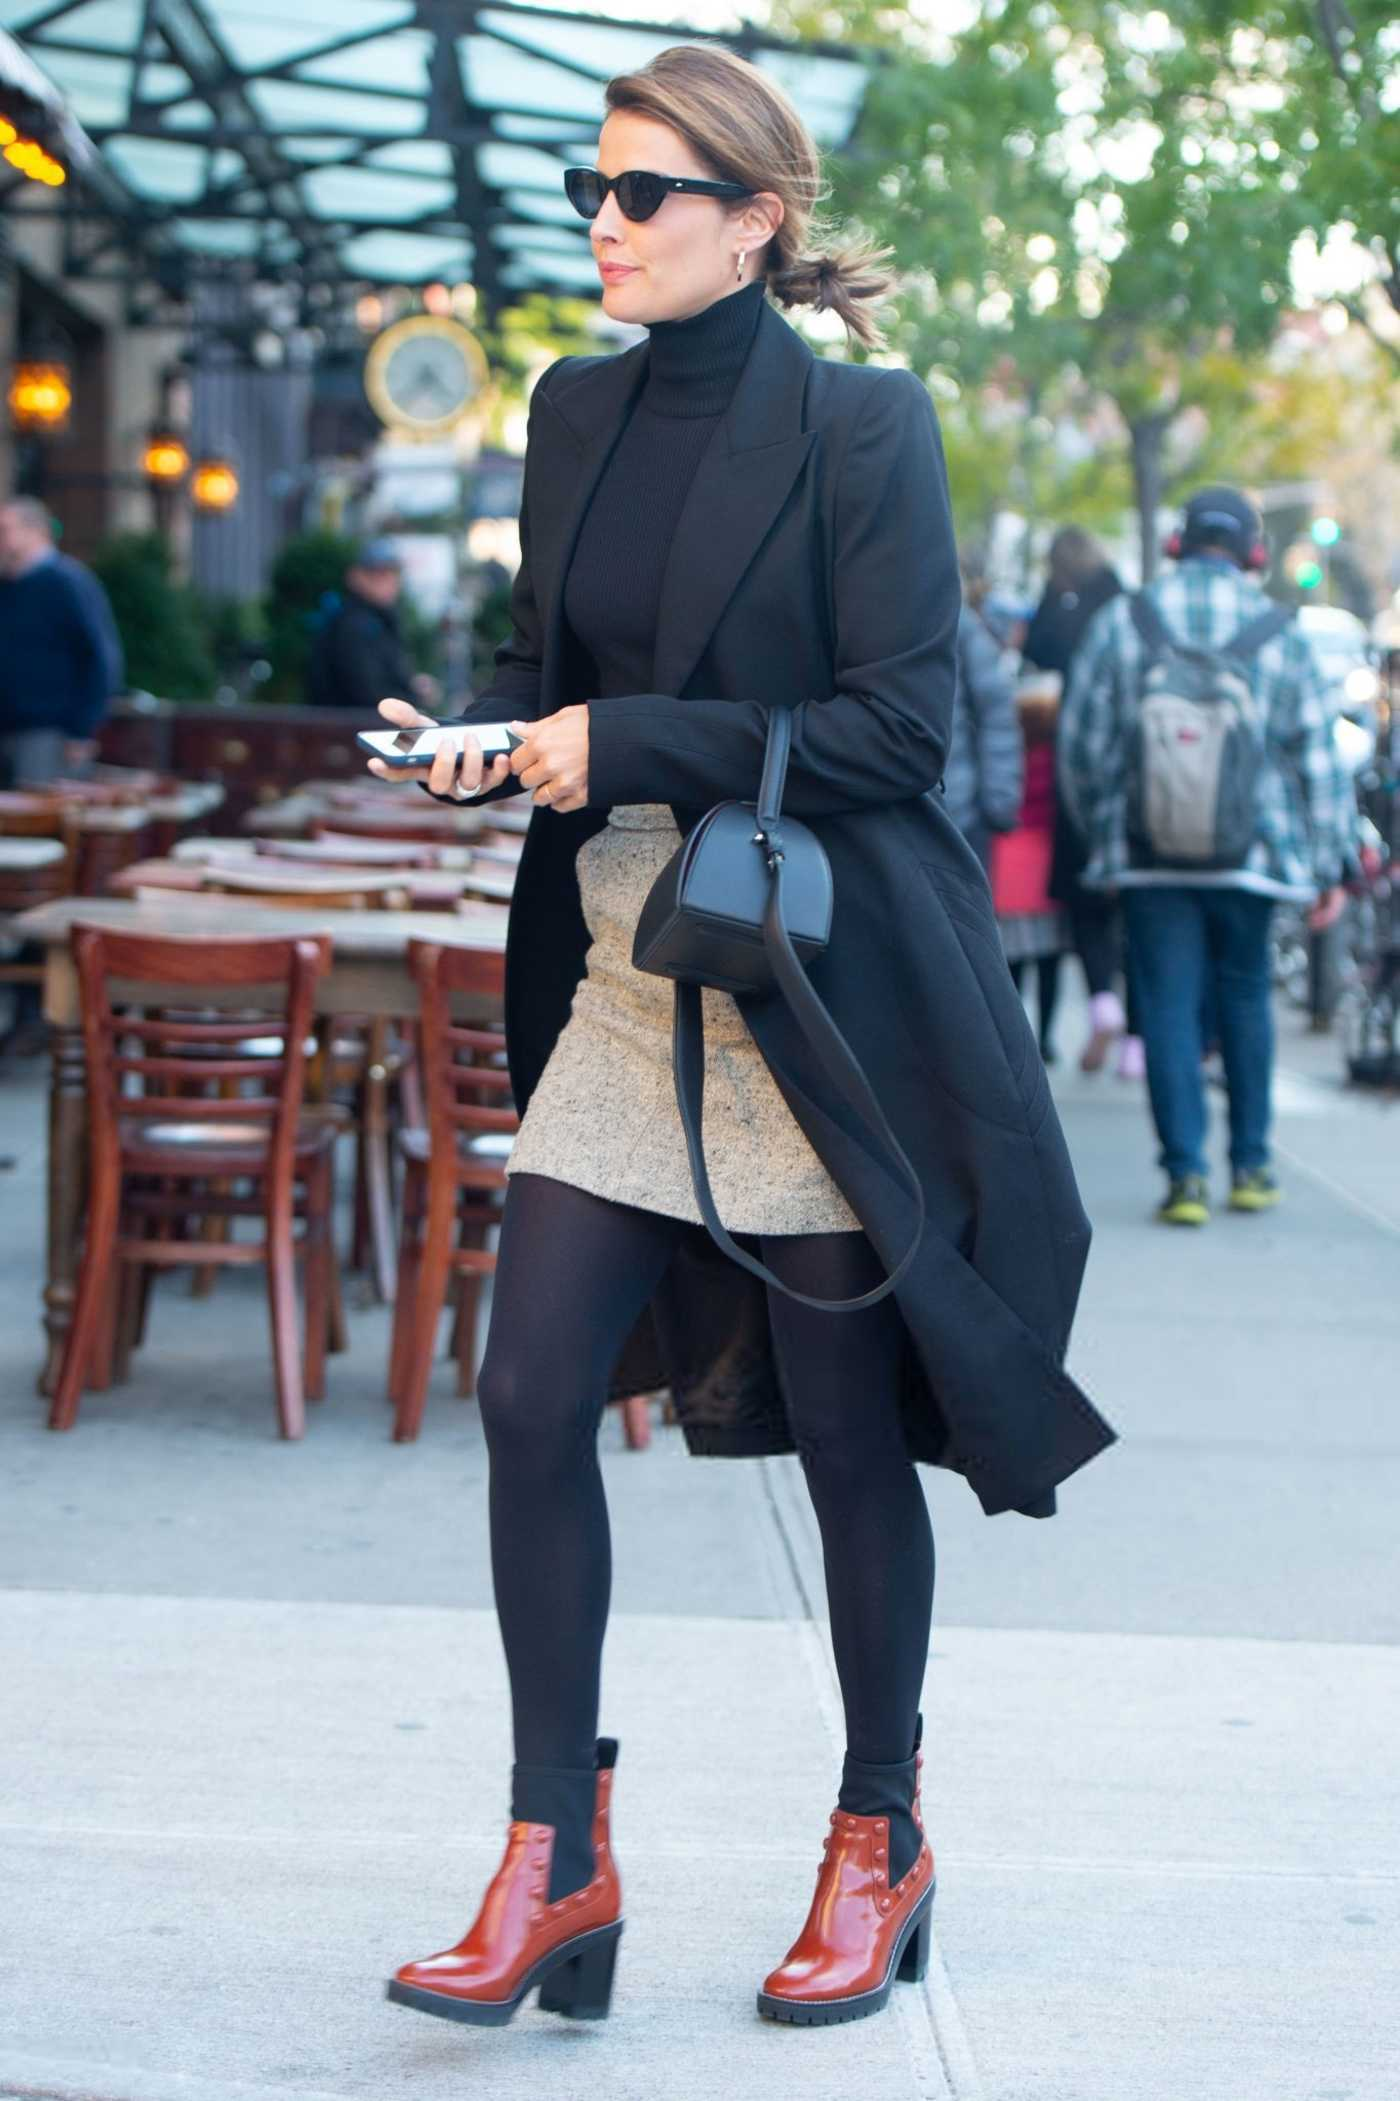 Cobie Smulders in a Black Trench Coat Was Seen Out in New York City 10/24/2018